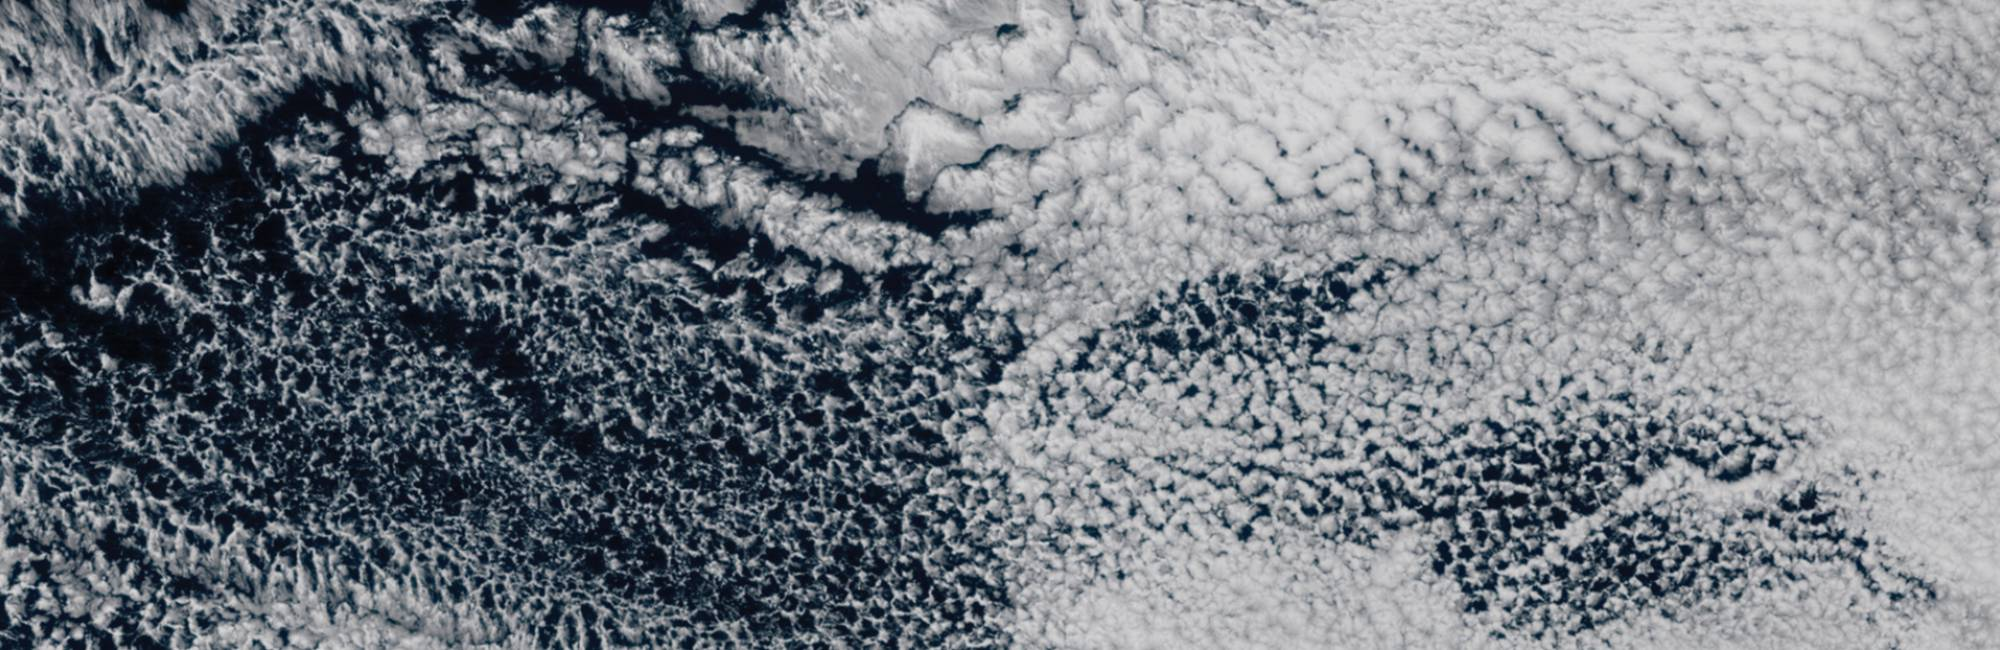 clouds over pacific, honeycomb pattern